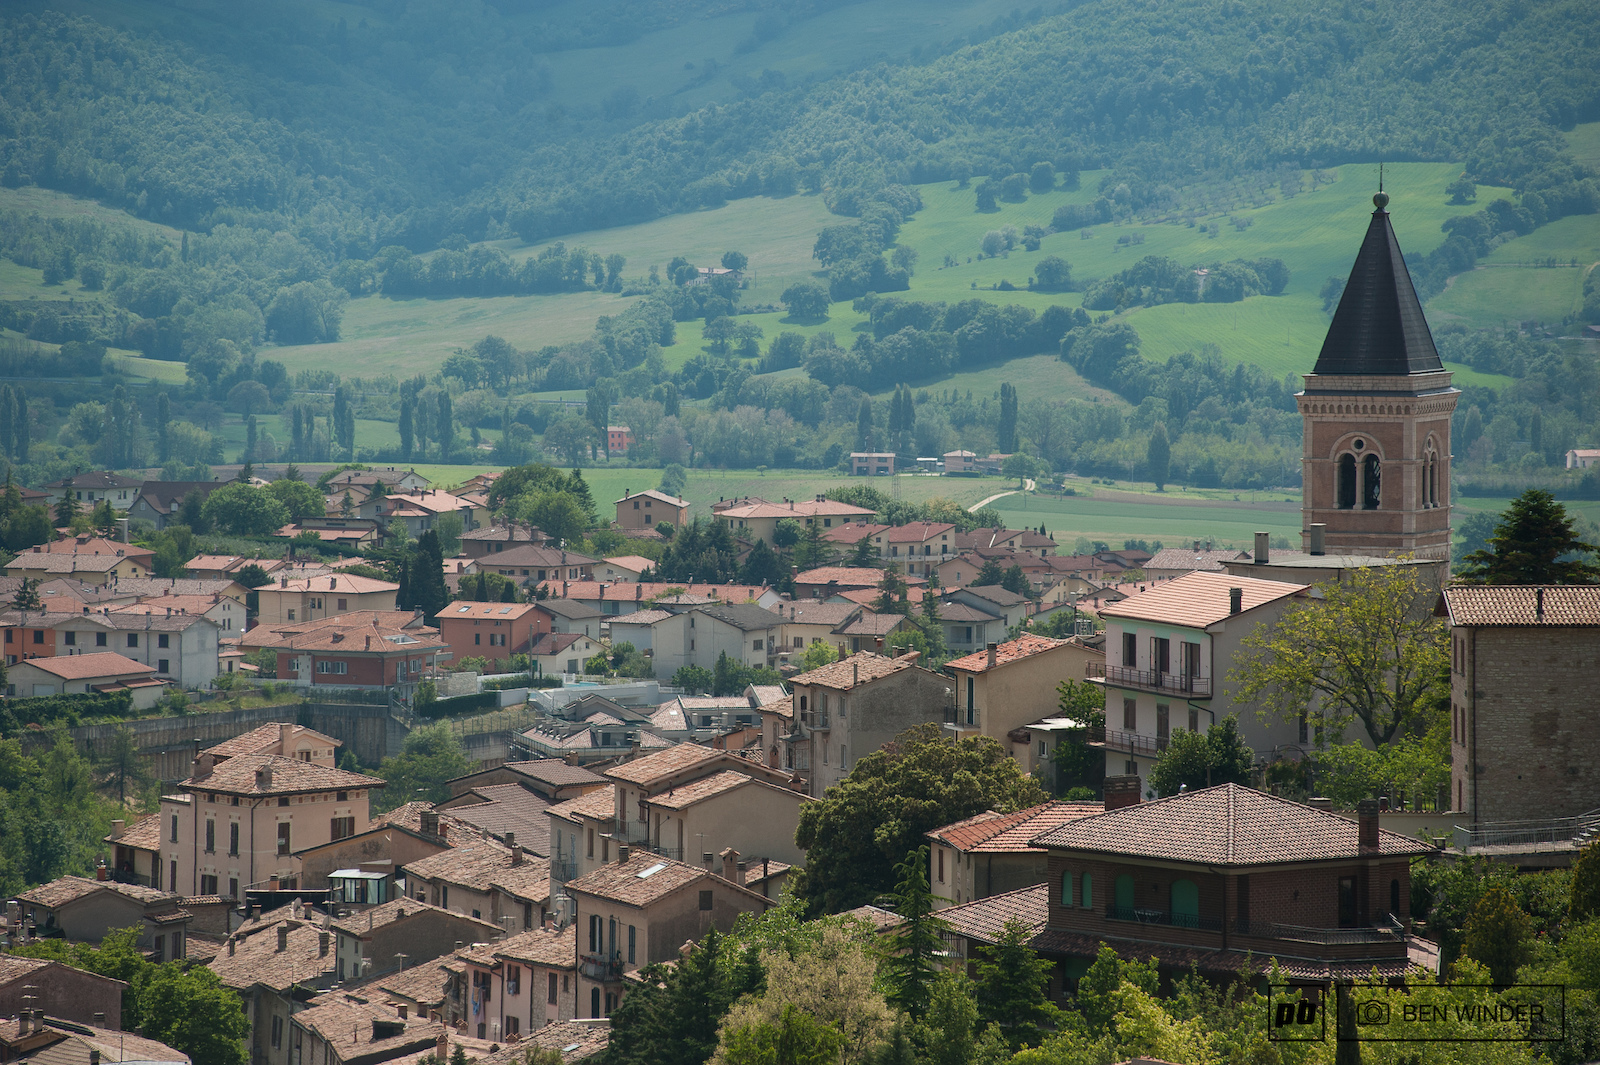 A super picturesque town in the heart of Italy.